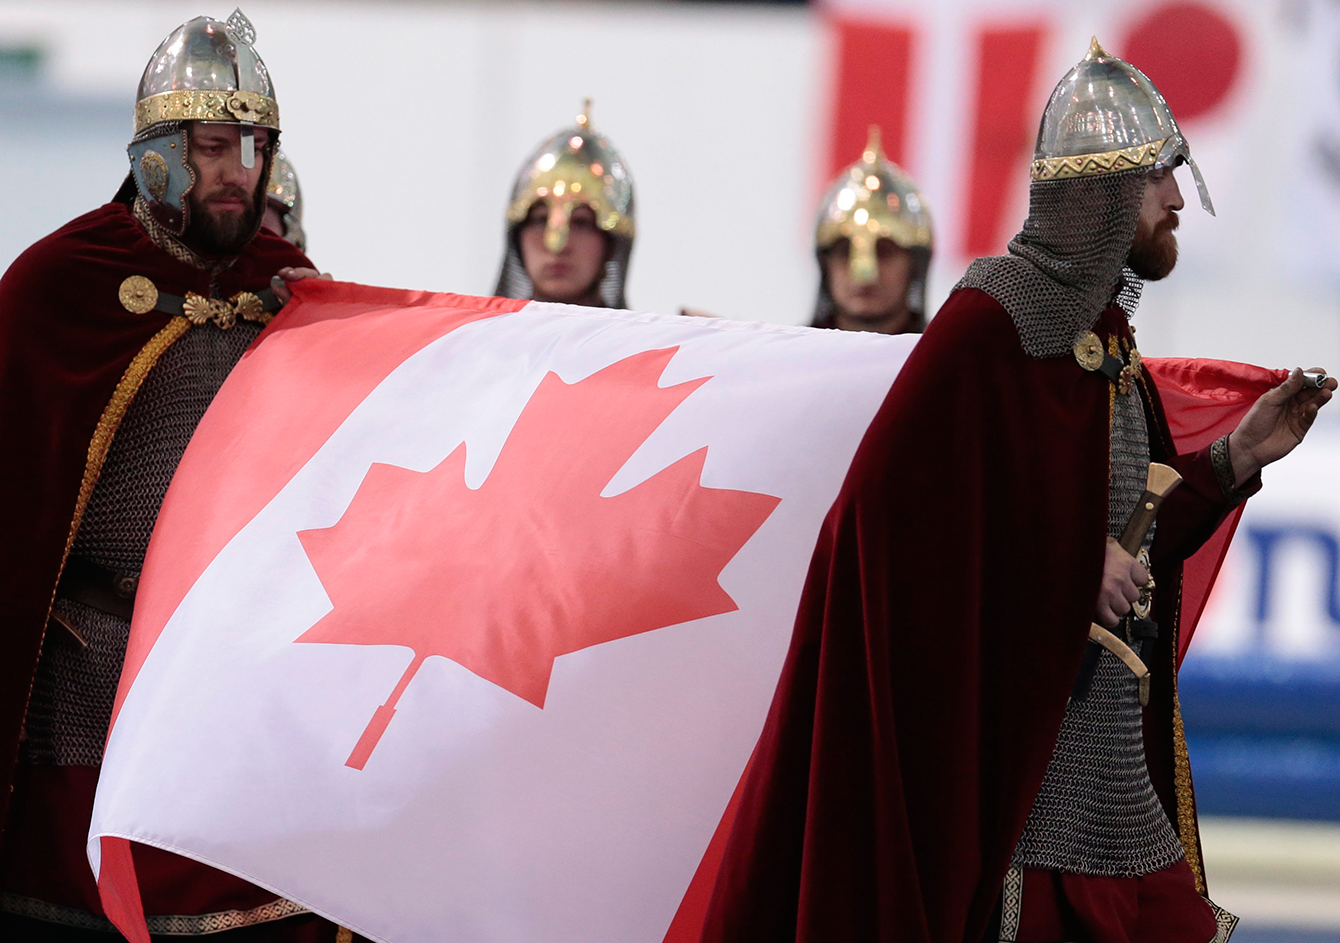 Performers, dressed as ancient Russian warriors, carry Canadian flag for the victory ceremony of the women's mass start race of the speed skating single distance World Championships in Kolomna, Russia, on February 14, 2016. (AP Photo/Ivan Sekretarev)